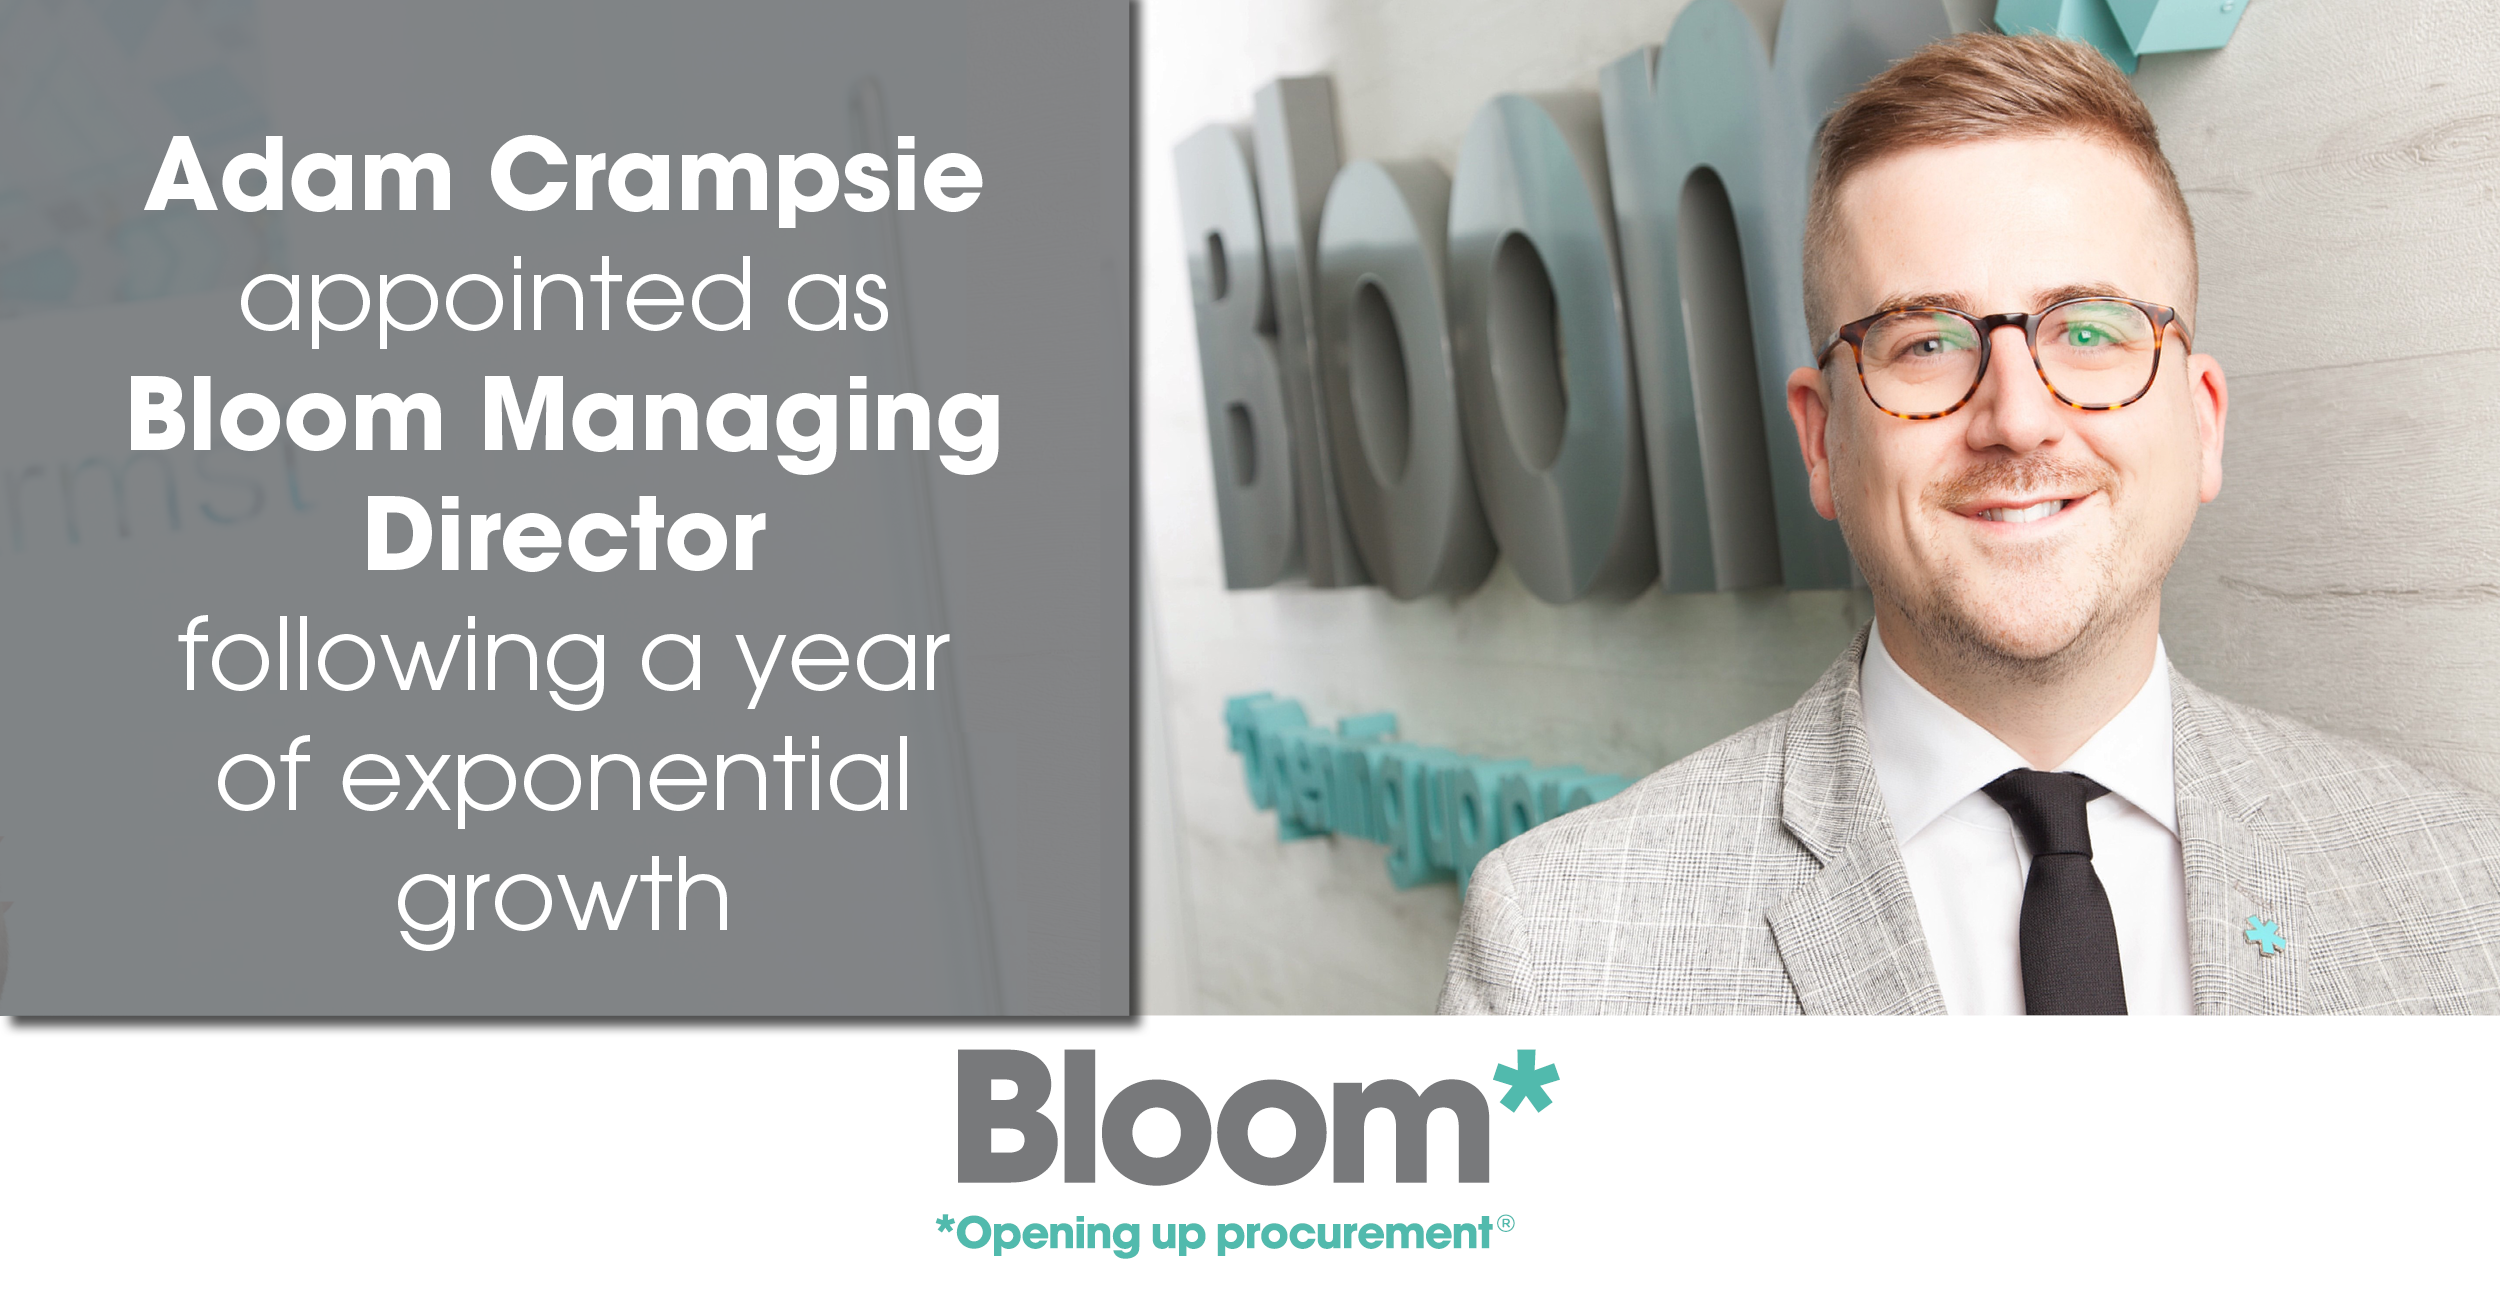 Adam Crampsie appointed managing director following a year of exponential growth at Bloom